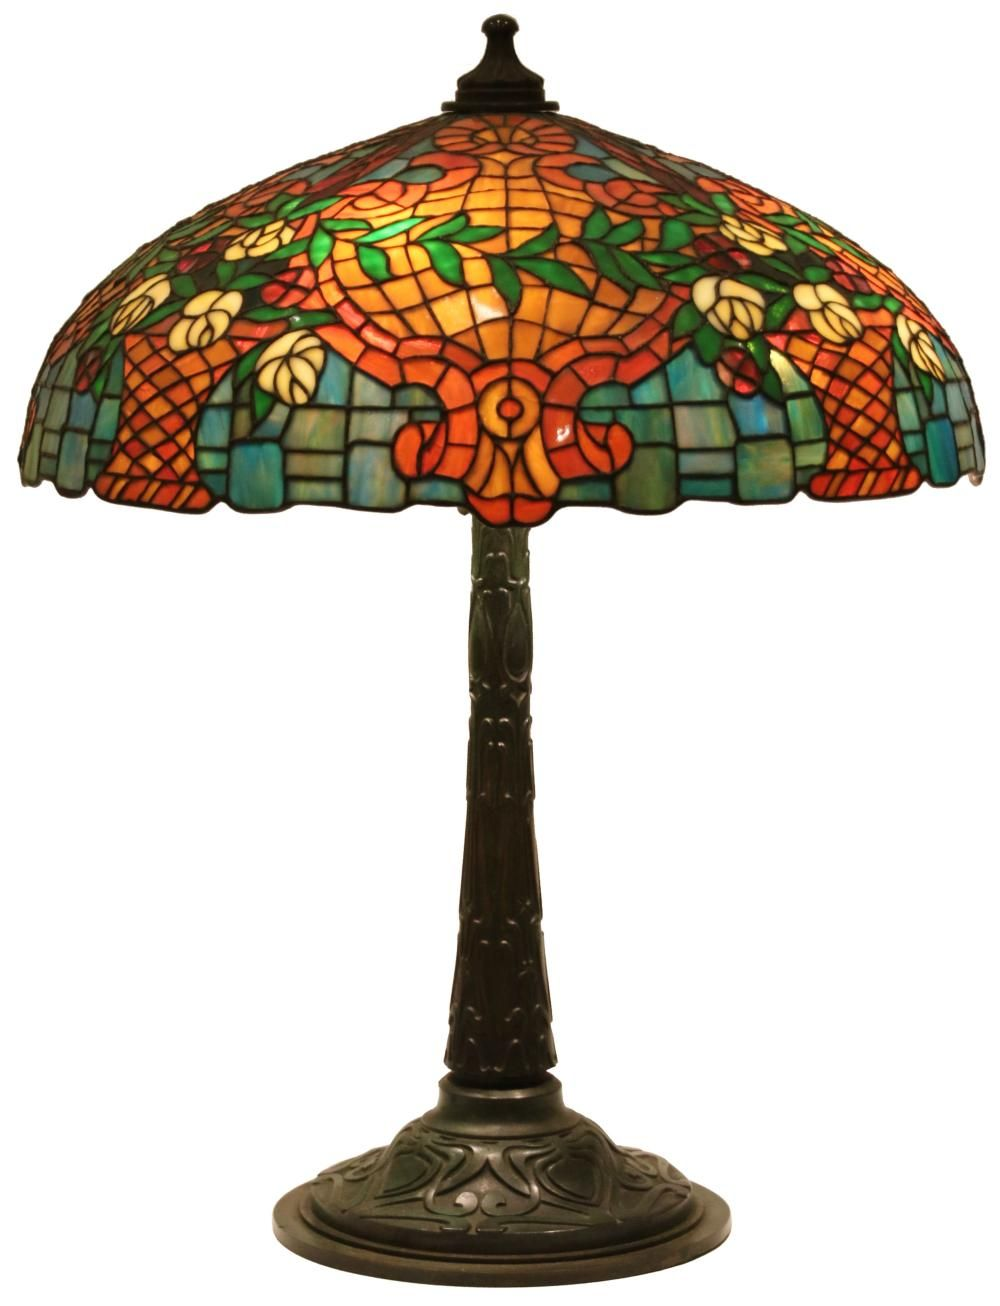 Gorham Leaded Glass Floral 20 Inch Table Lamp. Baskets of